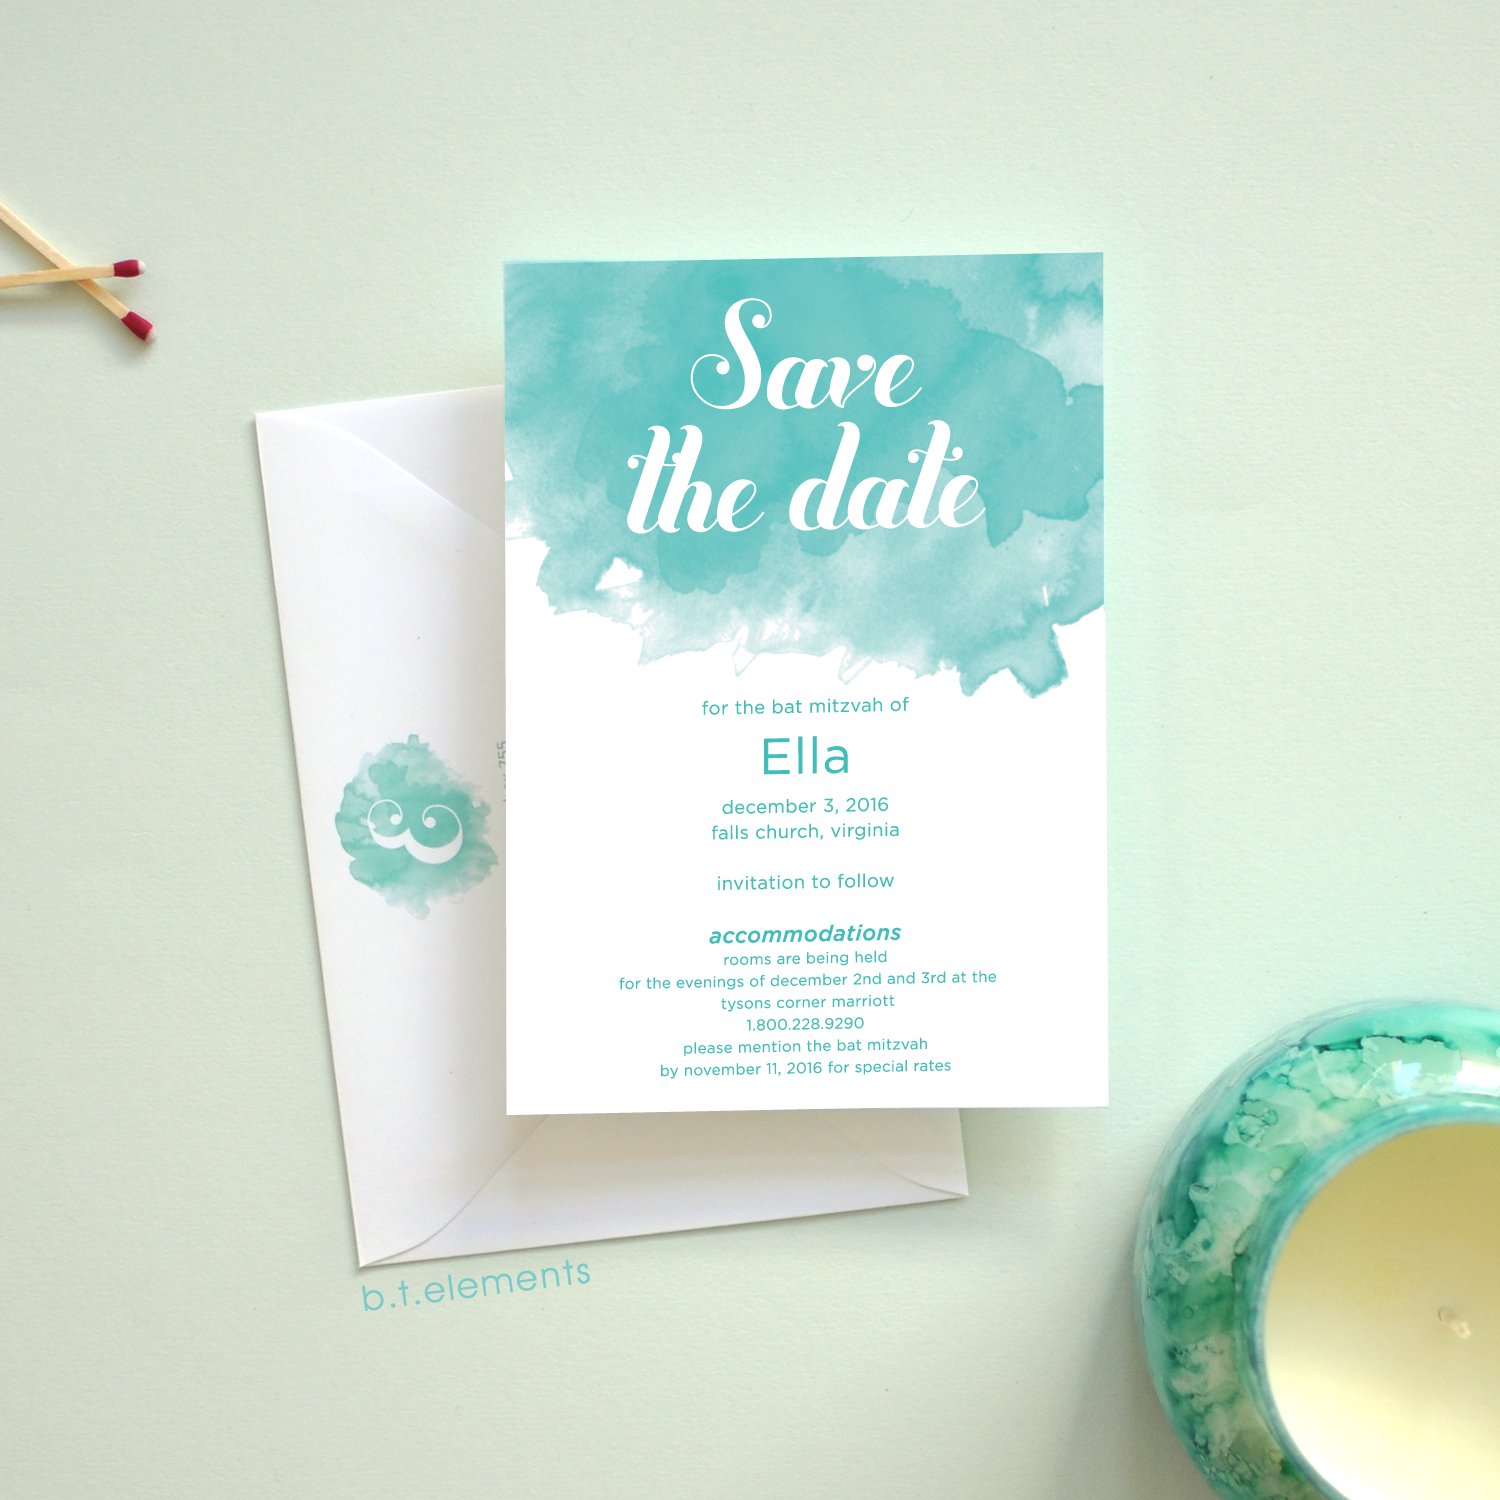 Ella's Bat Mitzvah Save the Date, 2016   Store: The Dandelion Patch in Tysons Corner, VA